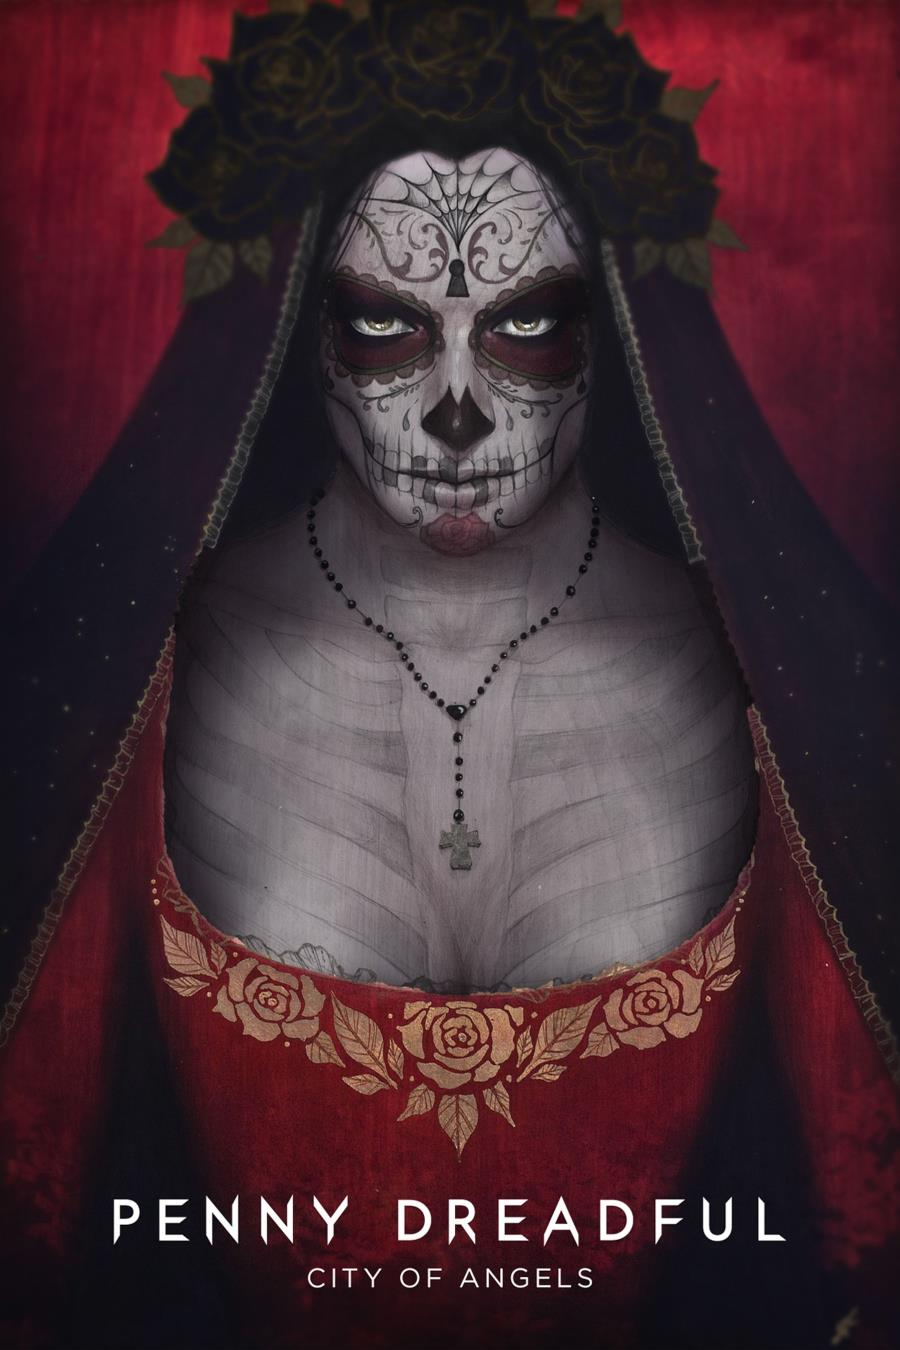 PENNY DREADFUL- CITY OF ANGELS (T1)(1). PENNY DREADFUL:CITY OF ANGELS (T1)